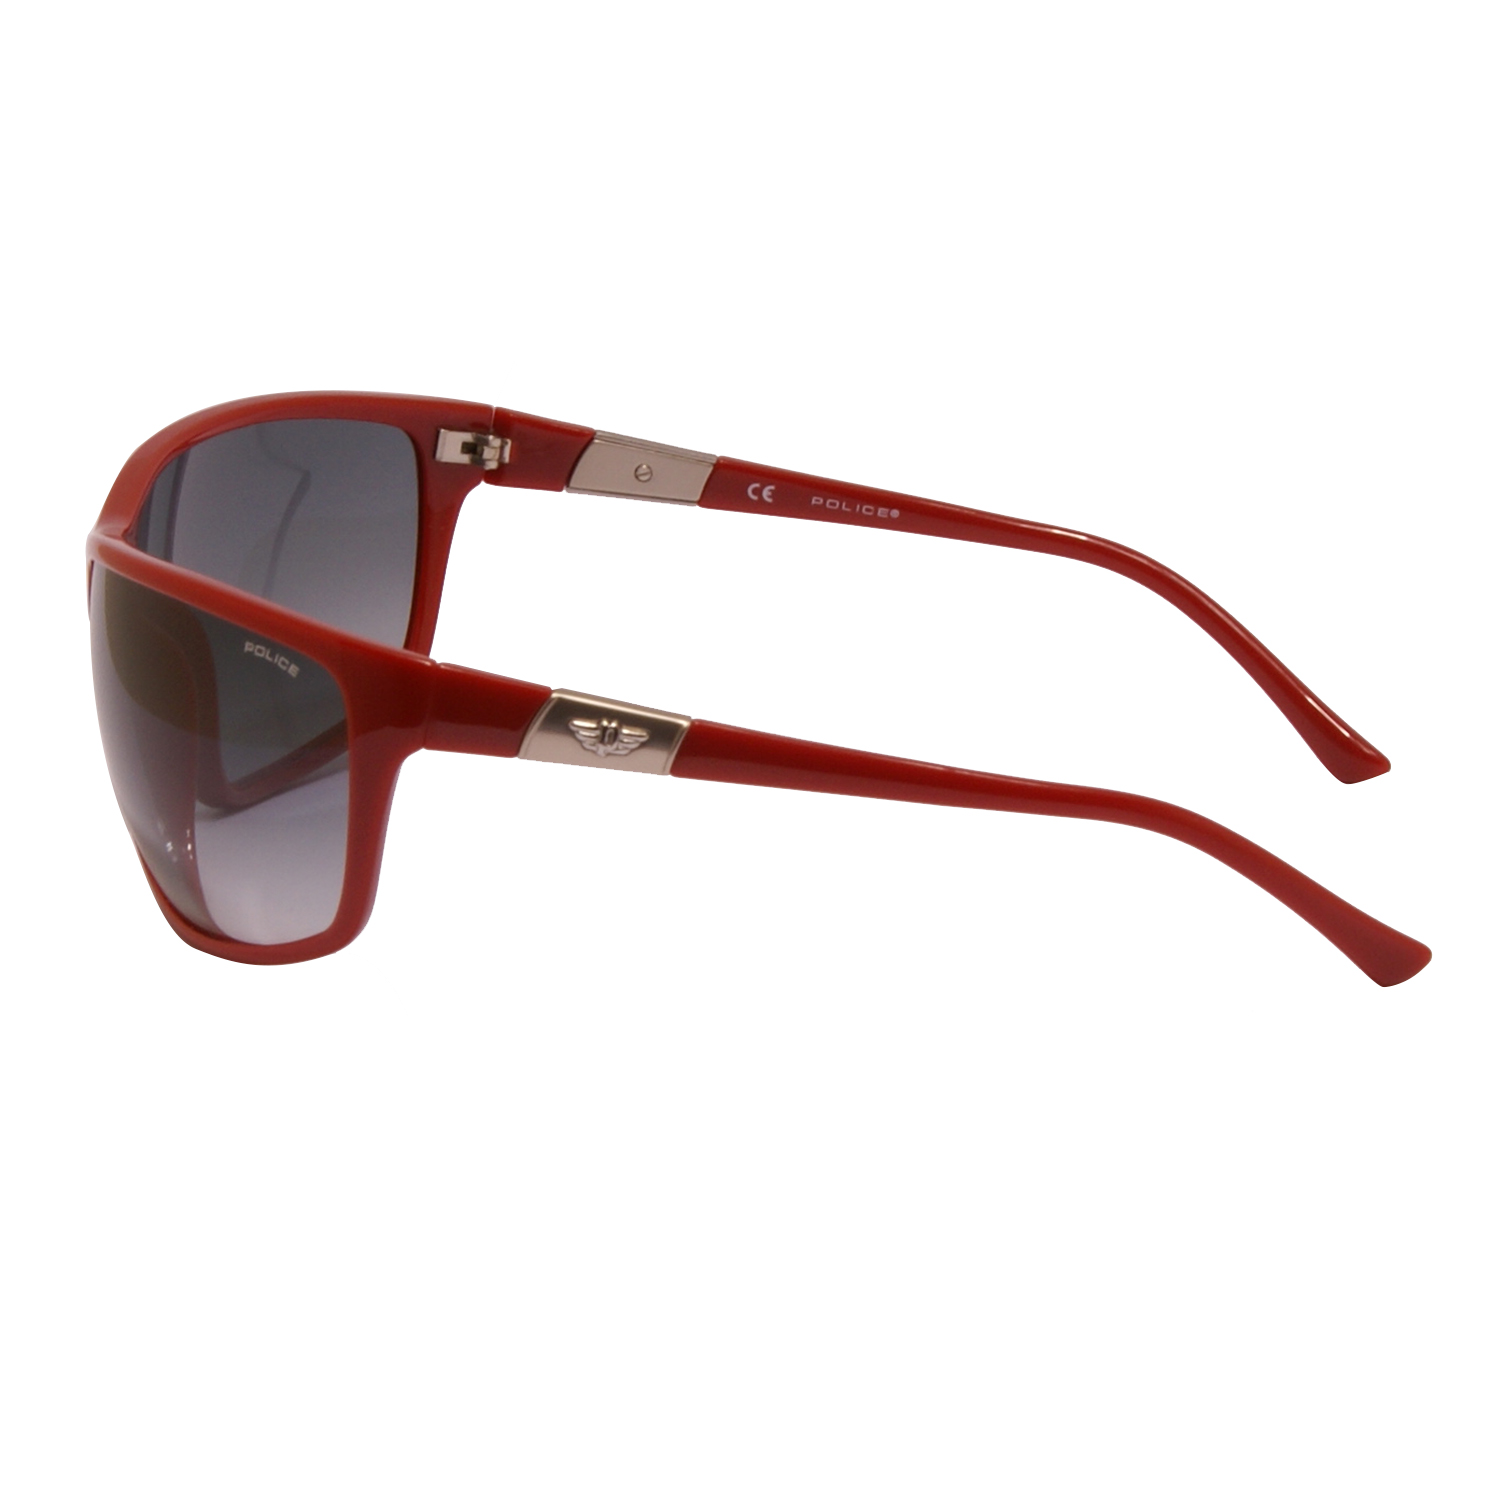 Police – Shiny Red Classic Style Sunglasses with Case and Box